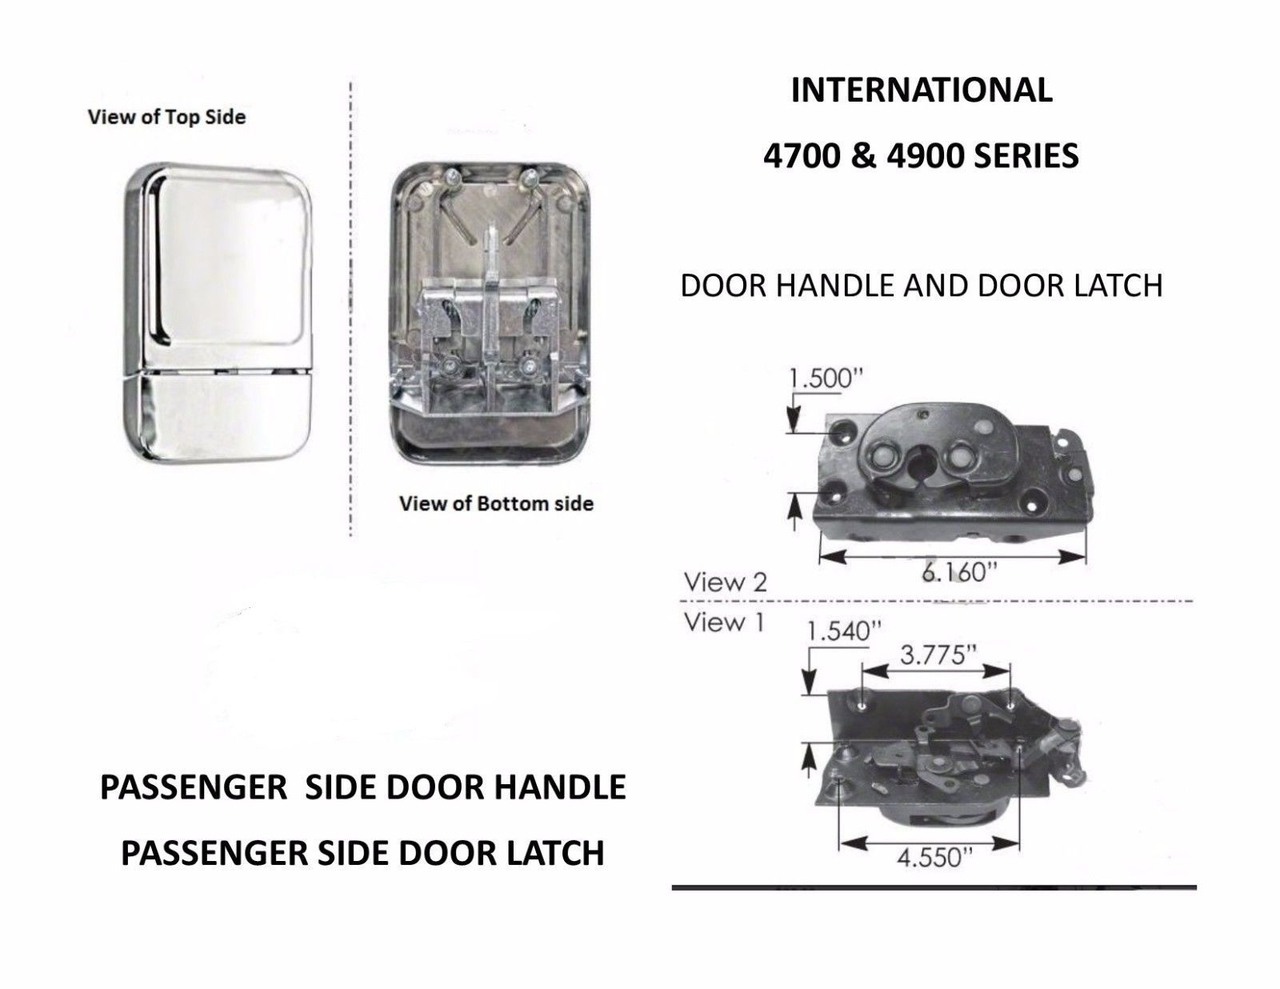 International 4700,4900 Series PASSENGER SIDE Door Handle & Door Latch